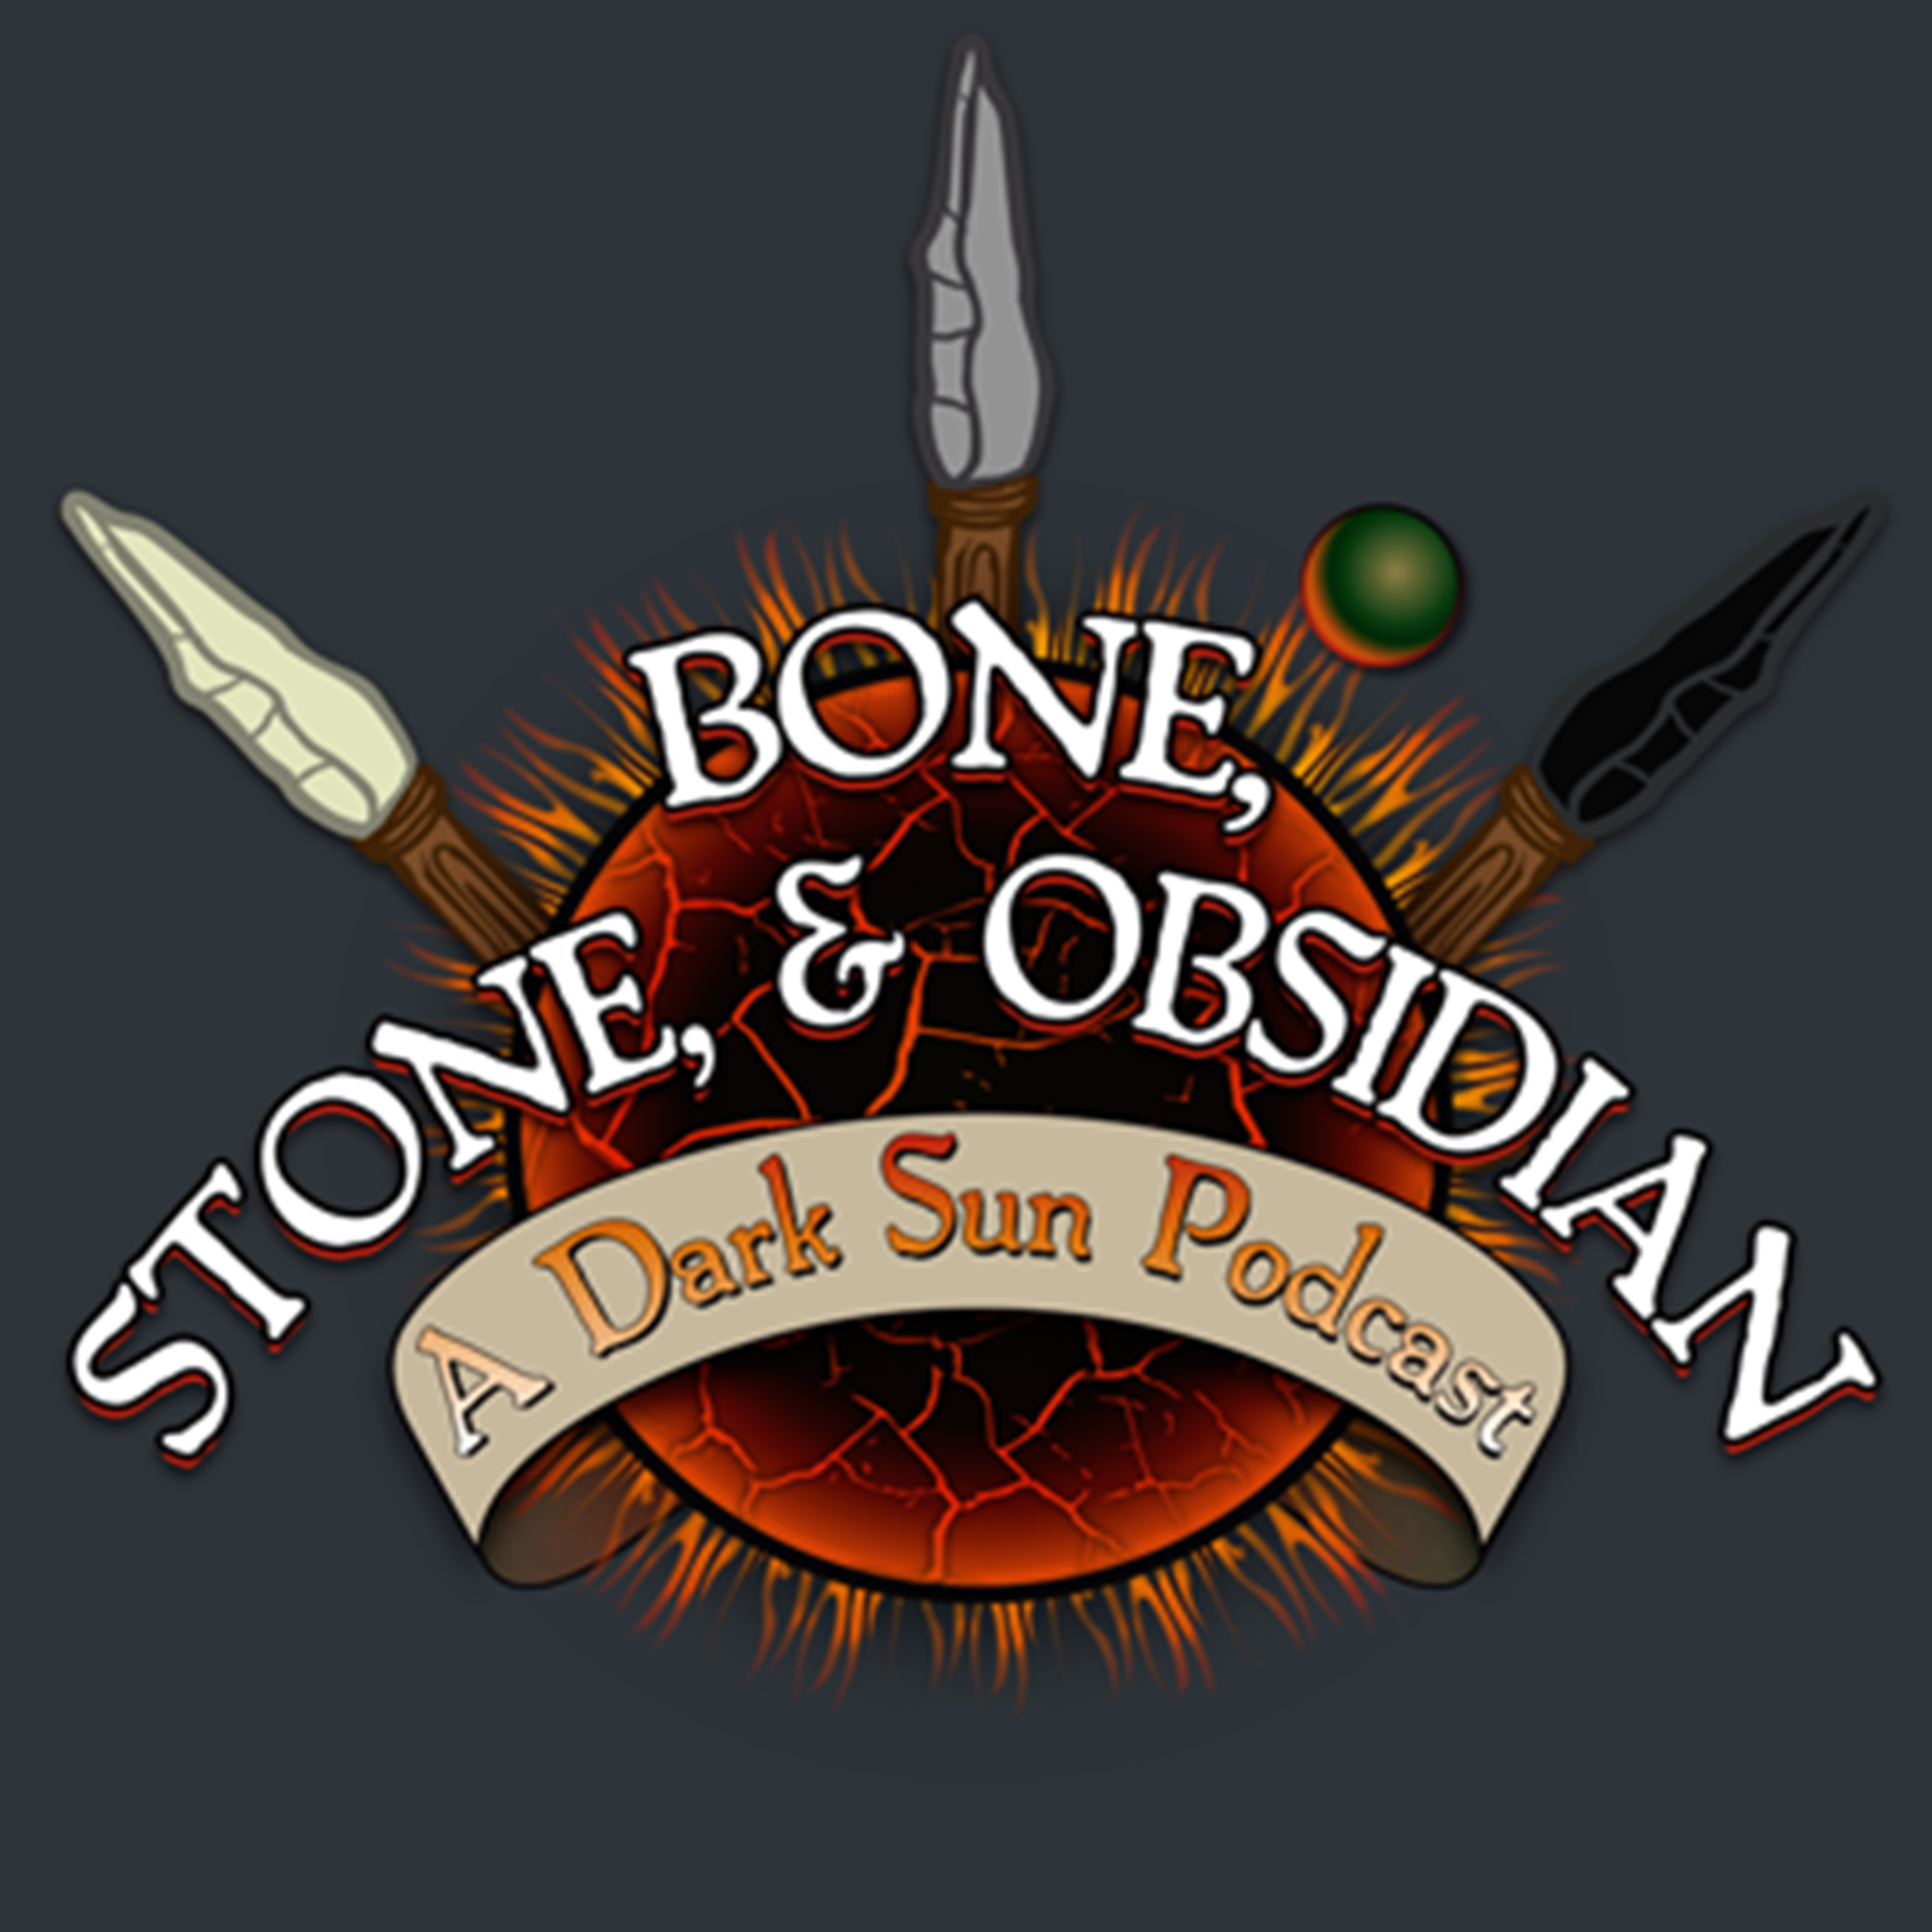 Bone, Stone, and Obsidian